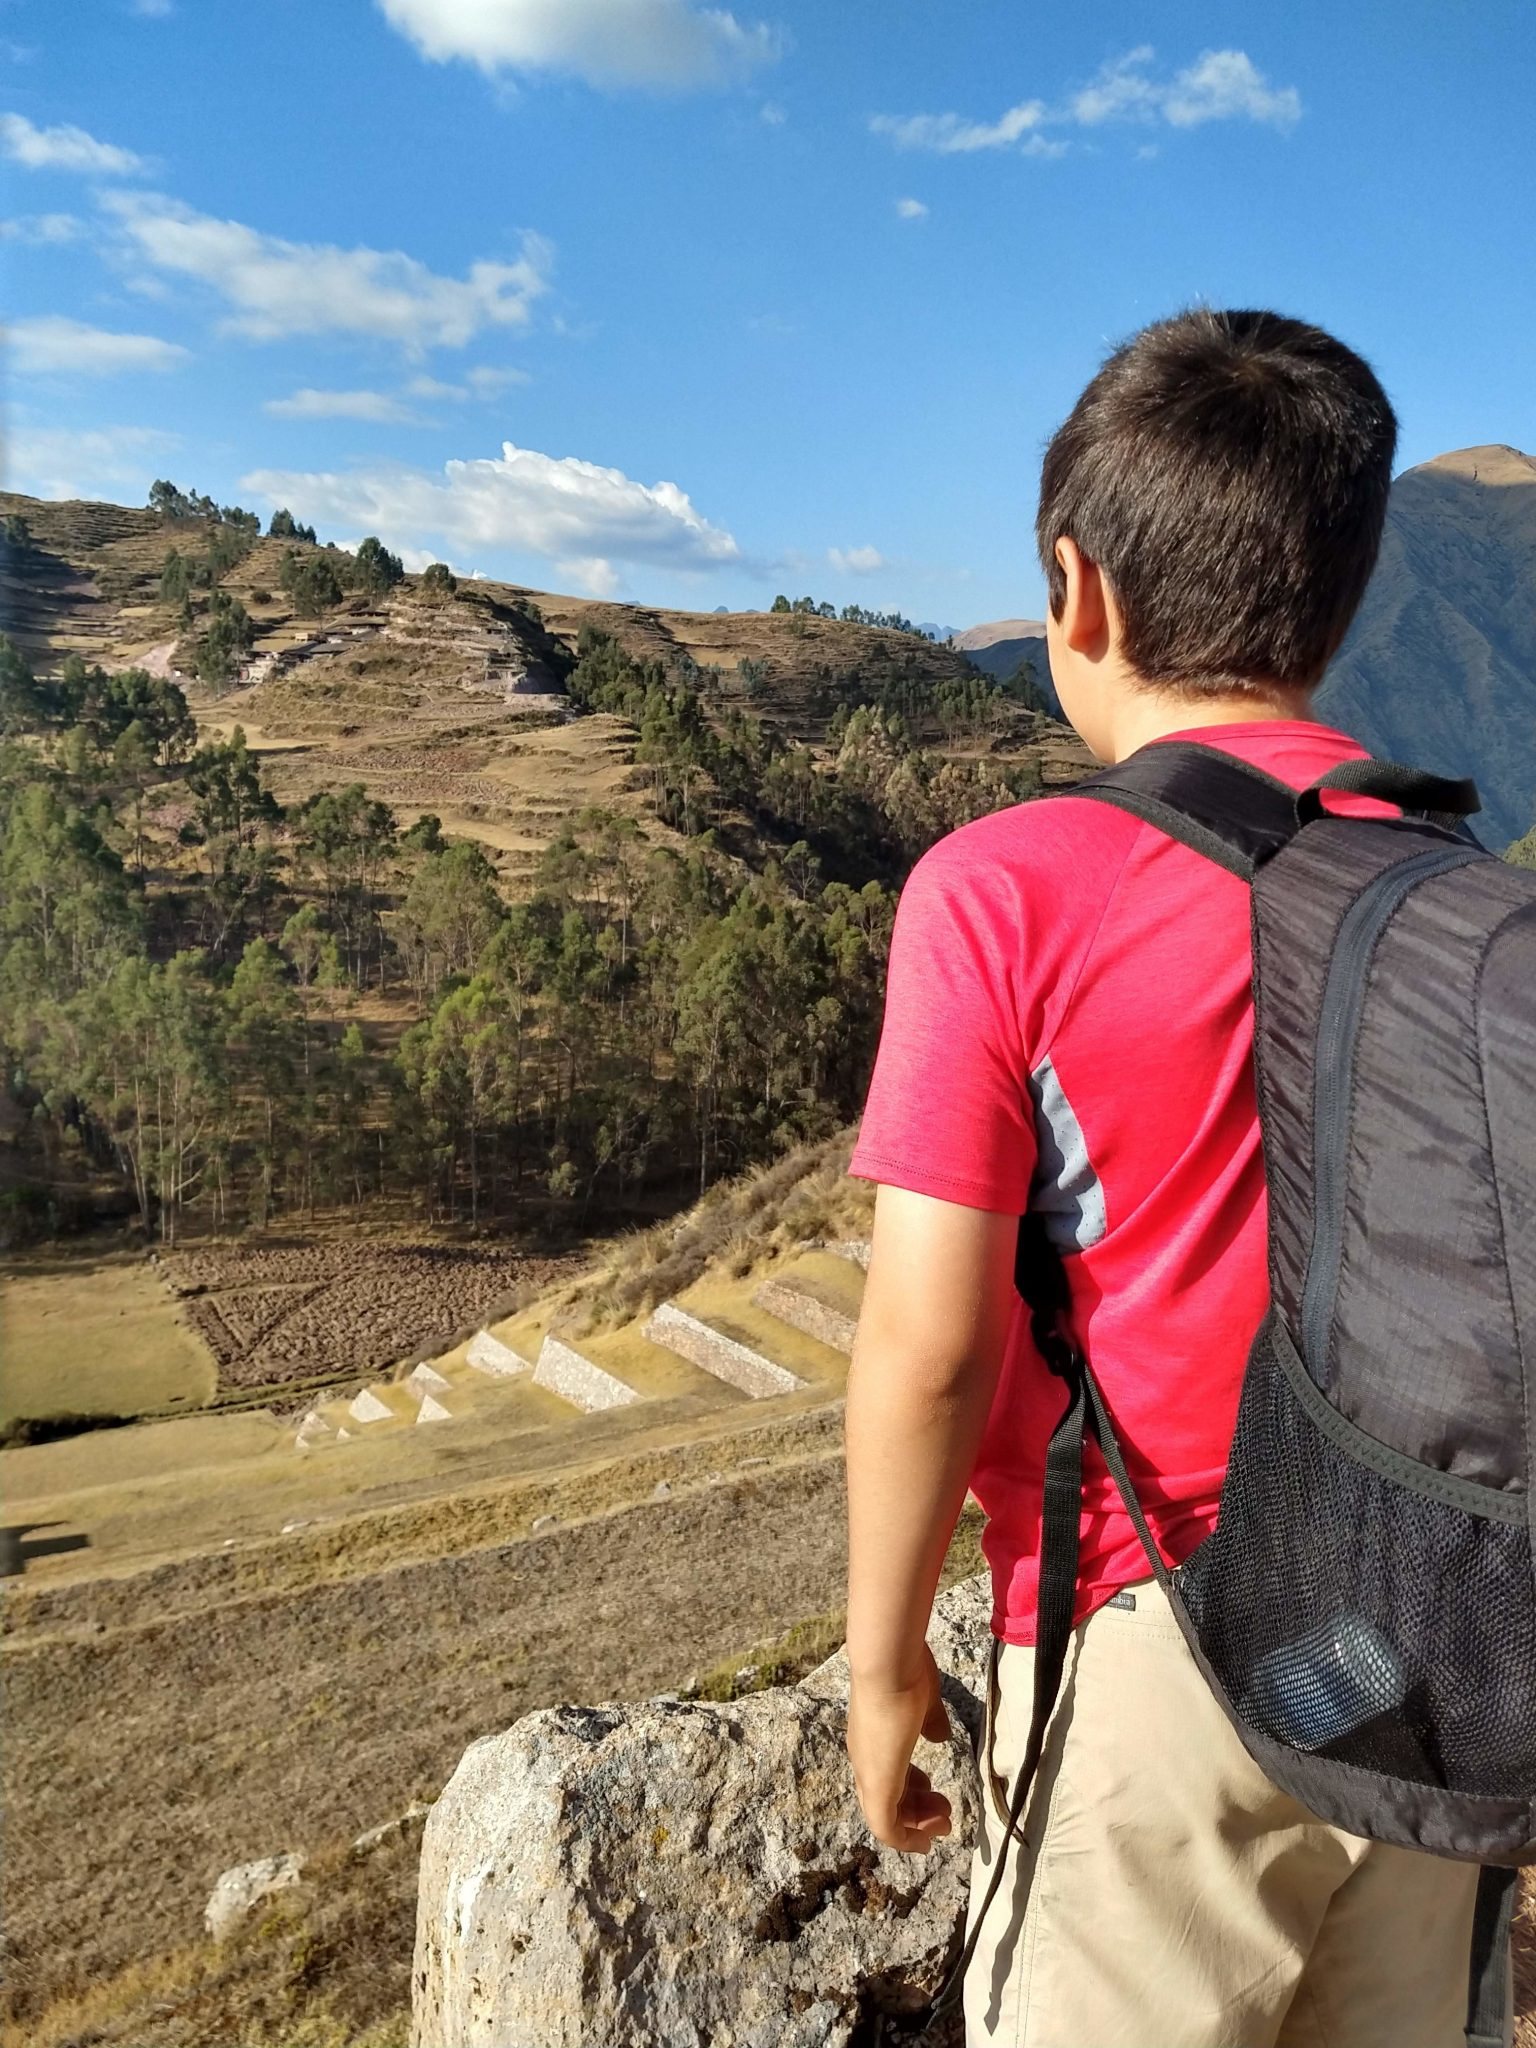 Marco looking at a terrace in Peru wearing a backpack